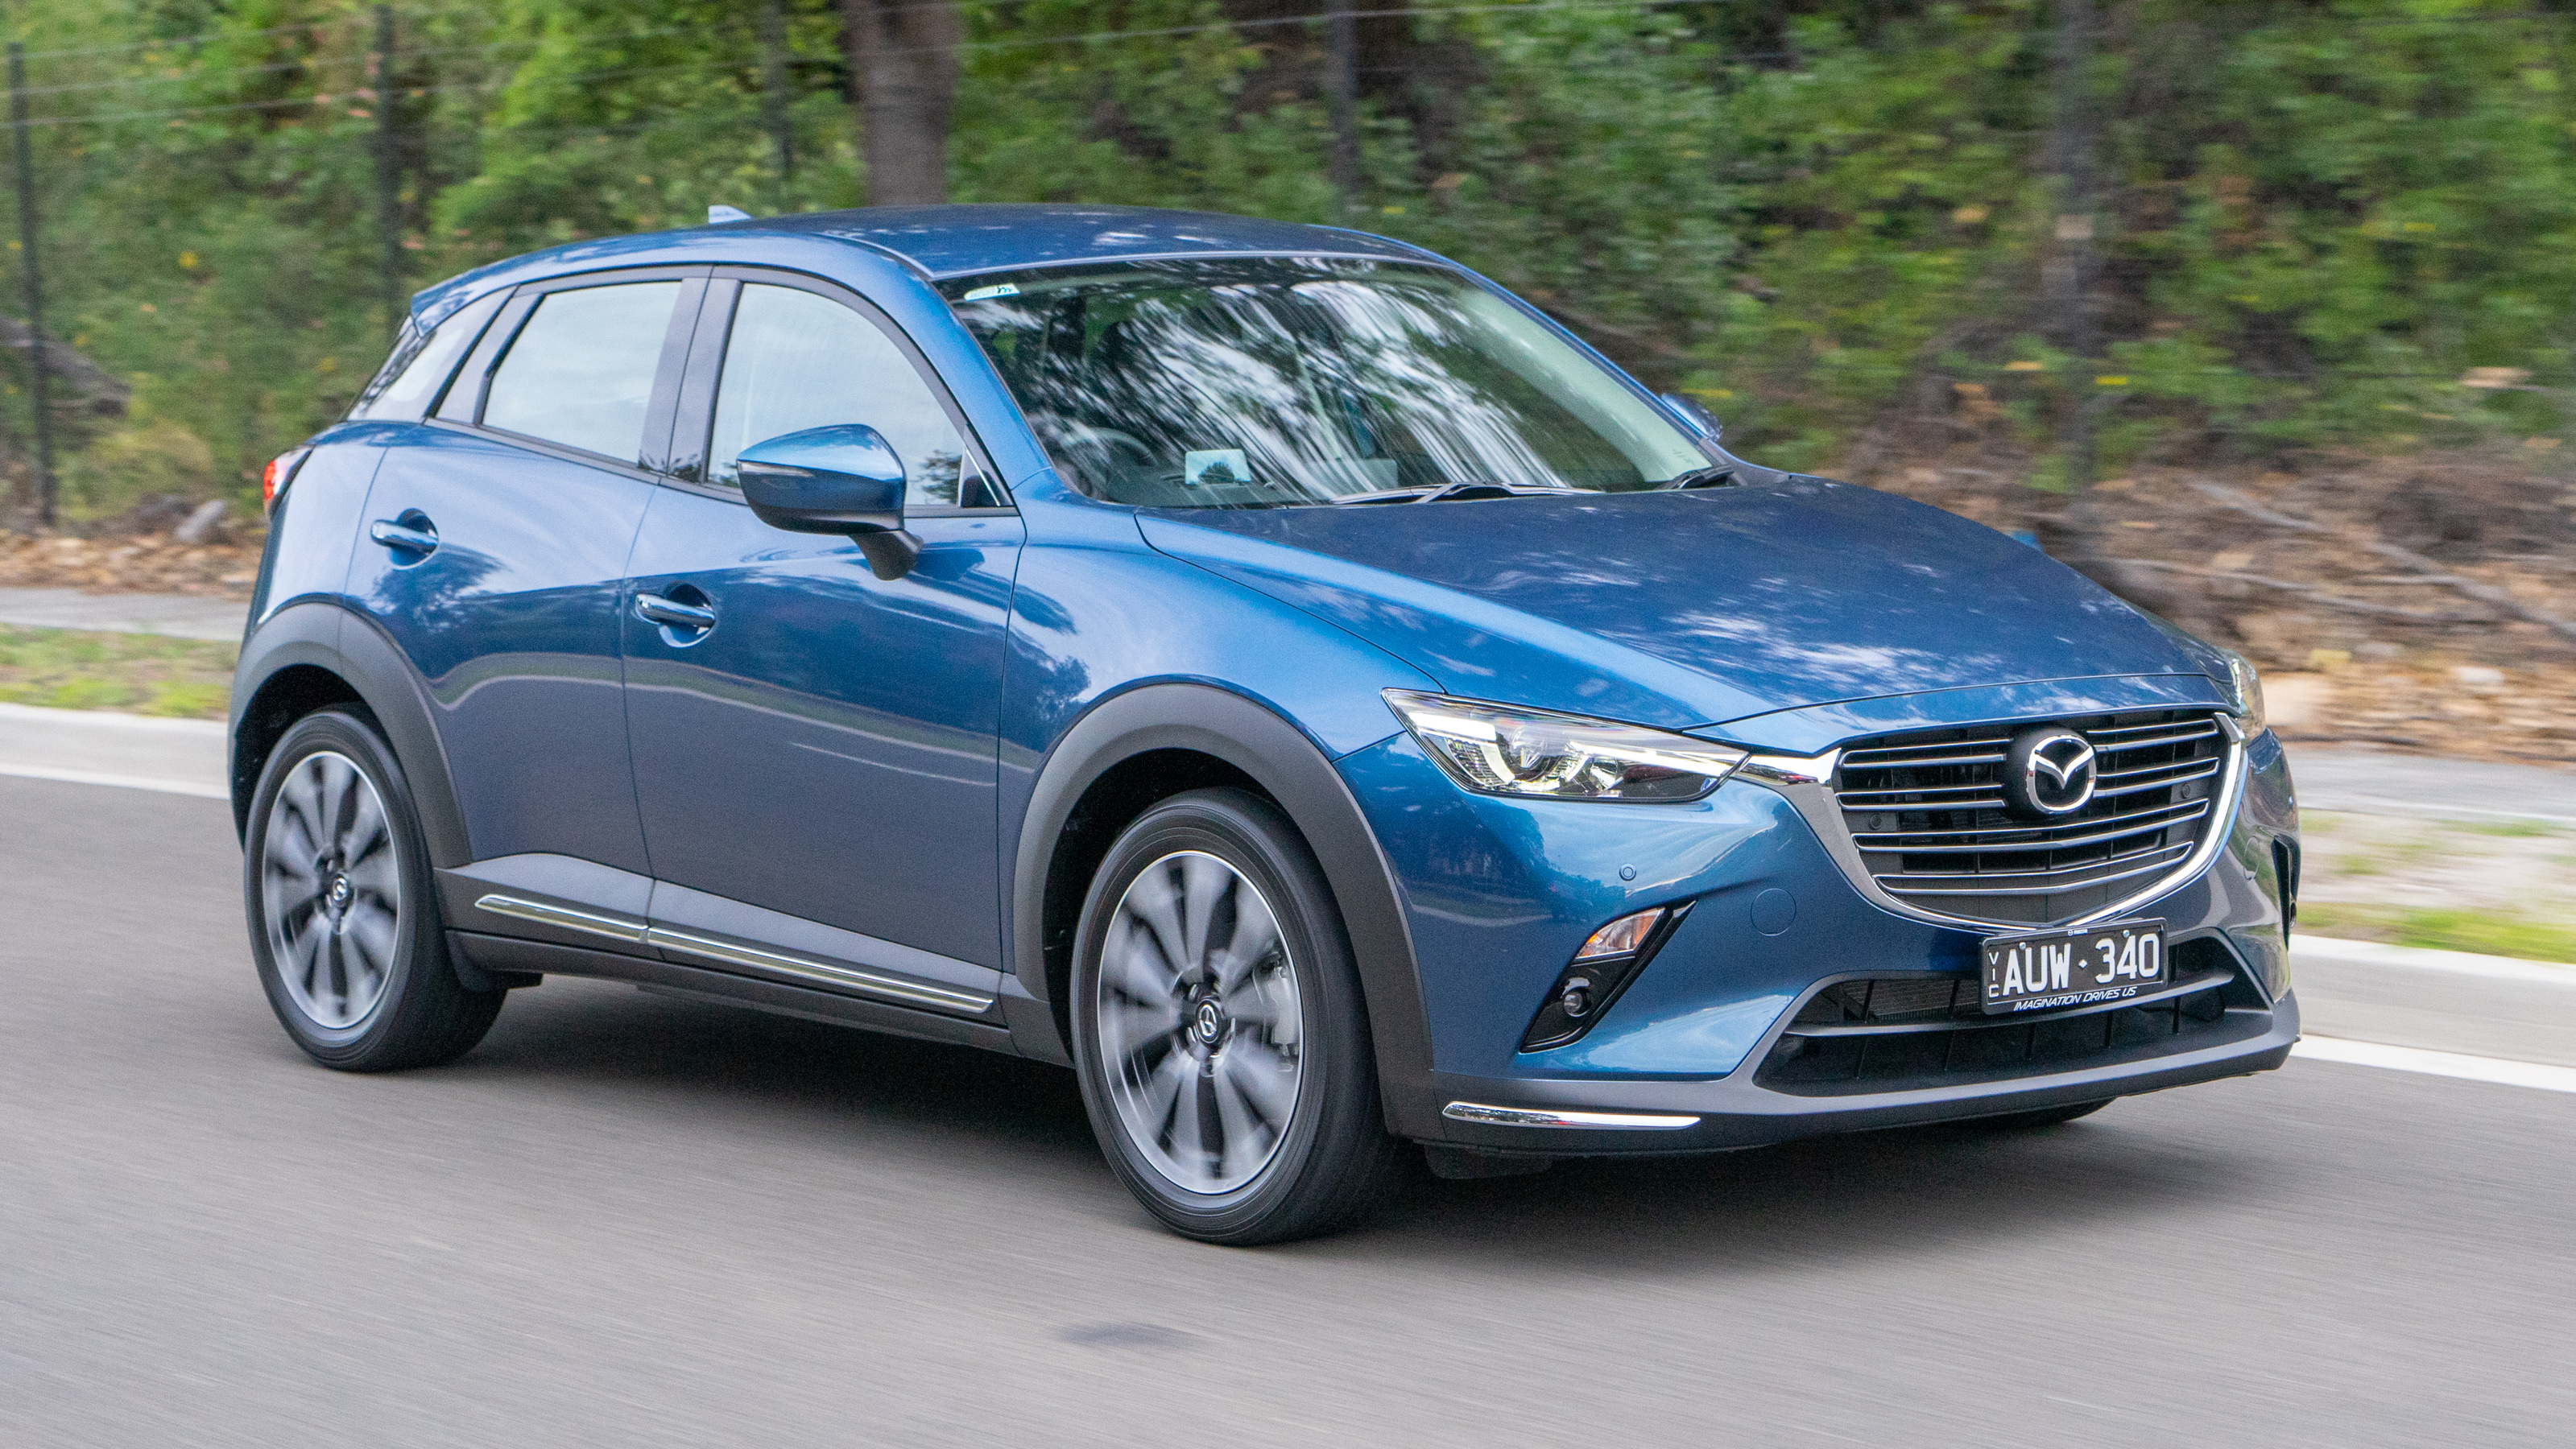 Mazda CX-3 sTouring she says, he says review